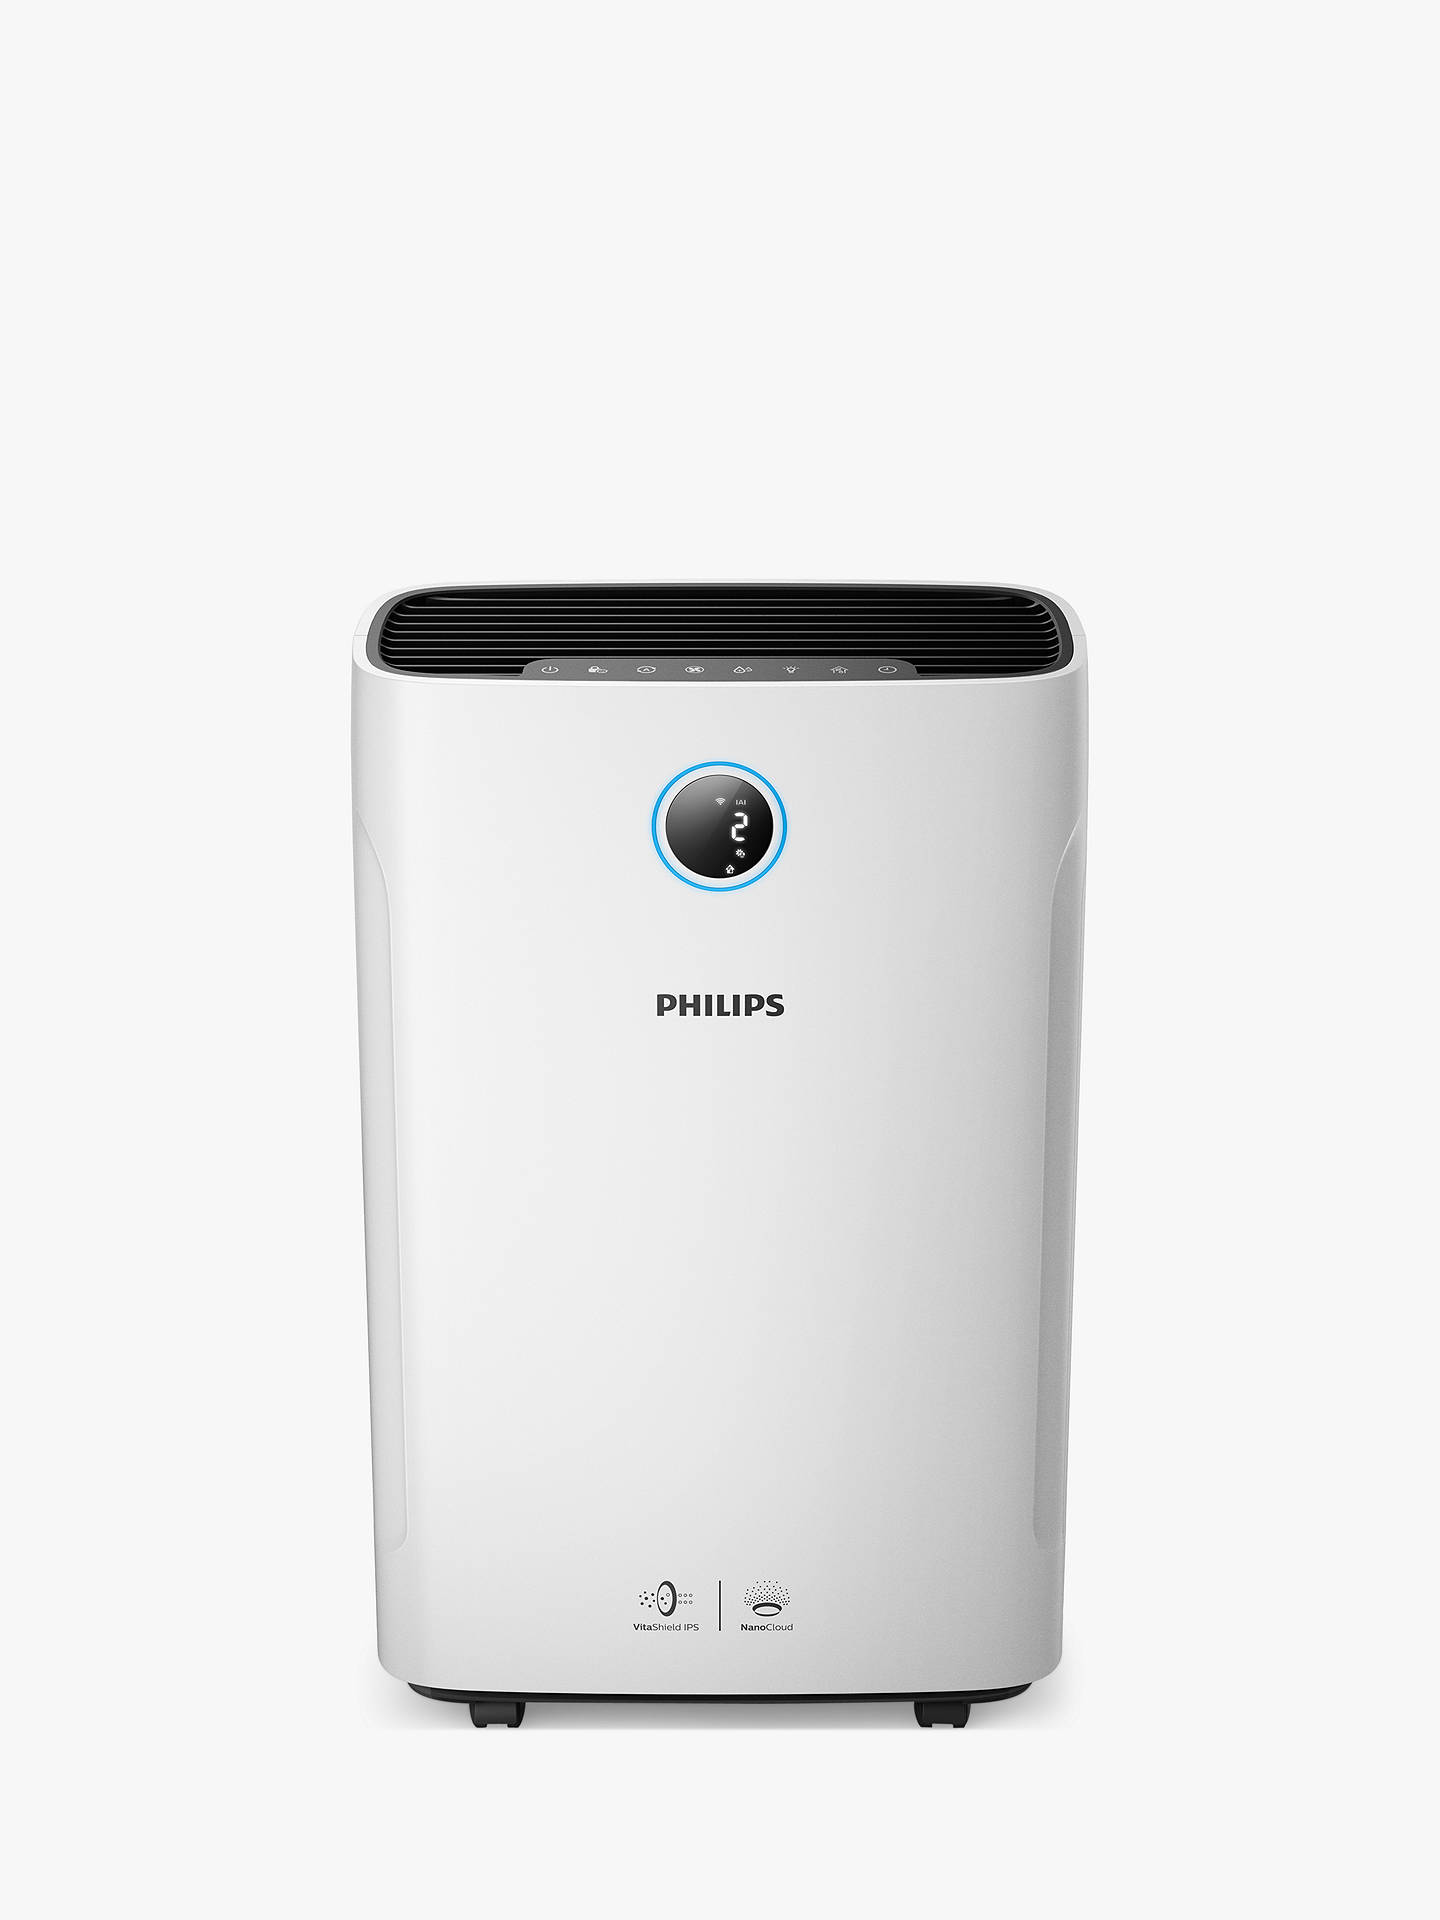 Philips Ac3829 60 2 In 1 Air Purifier And Humidifier At